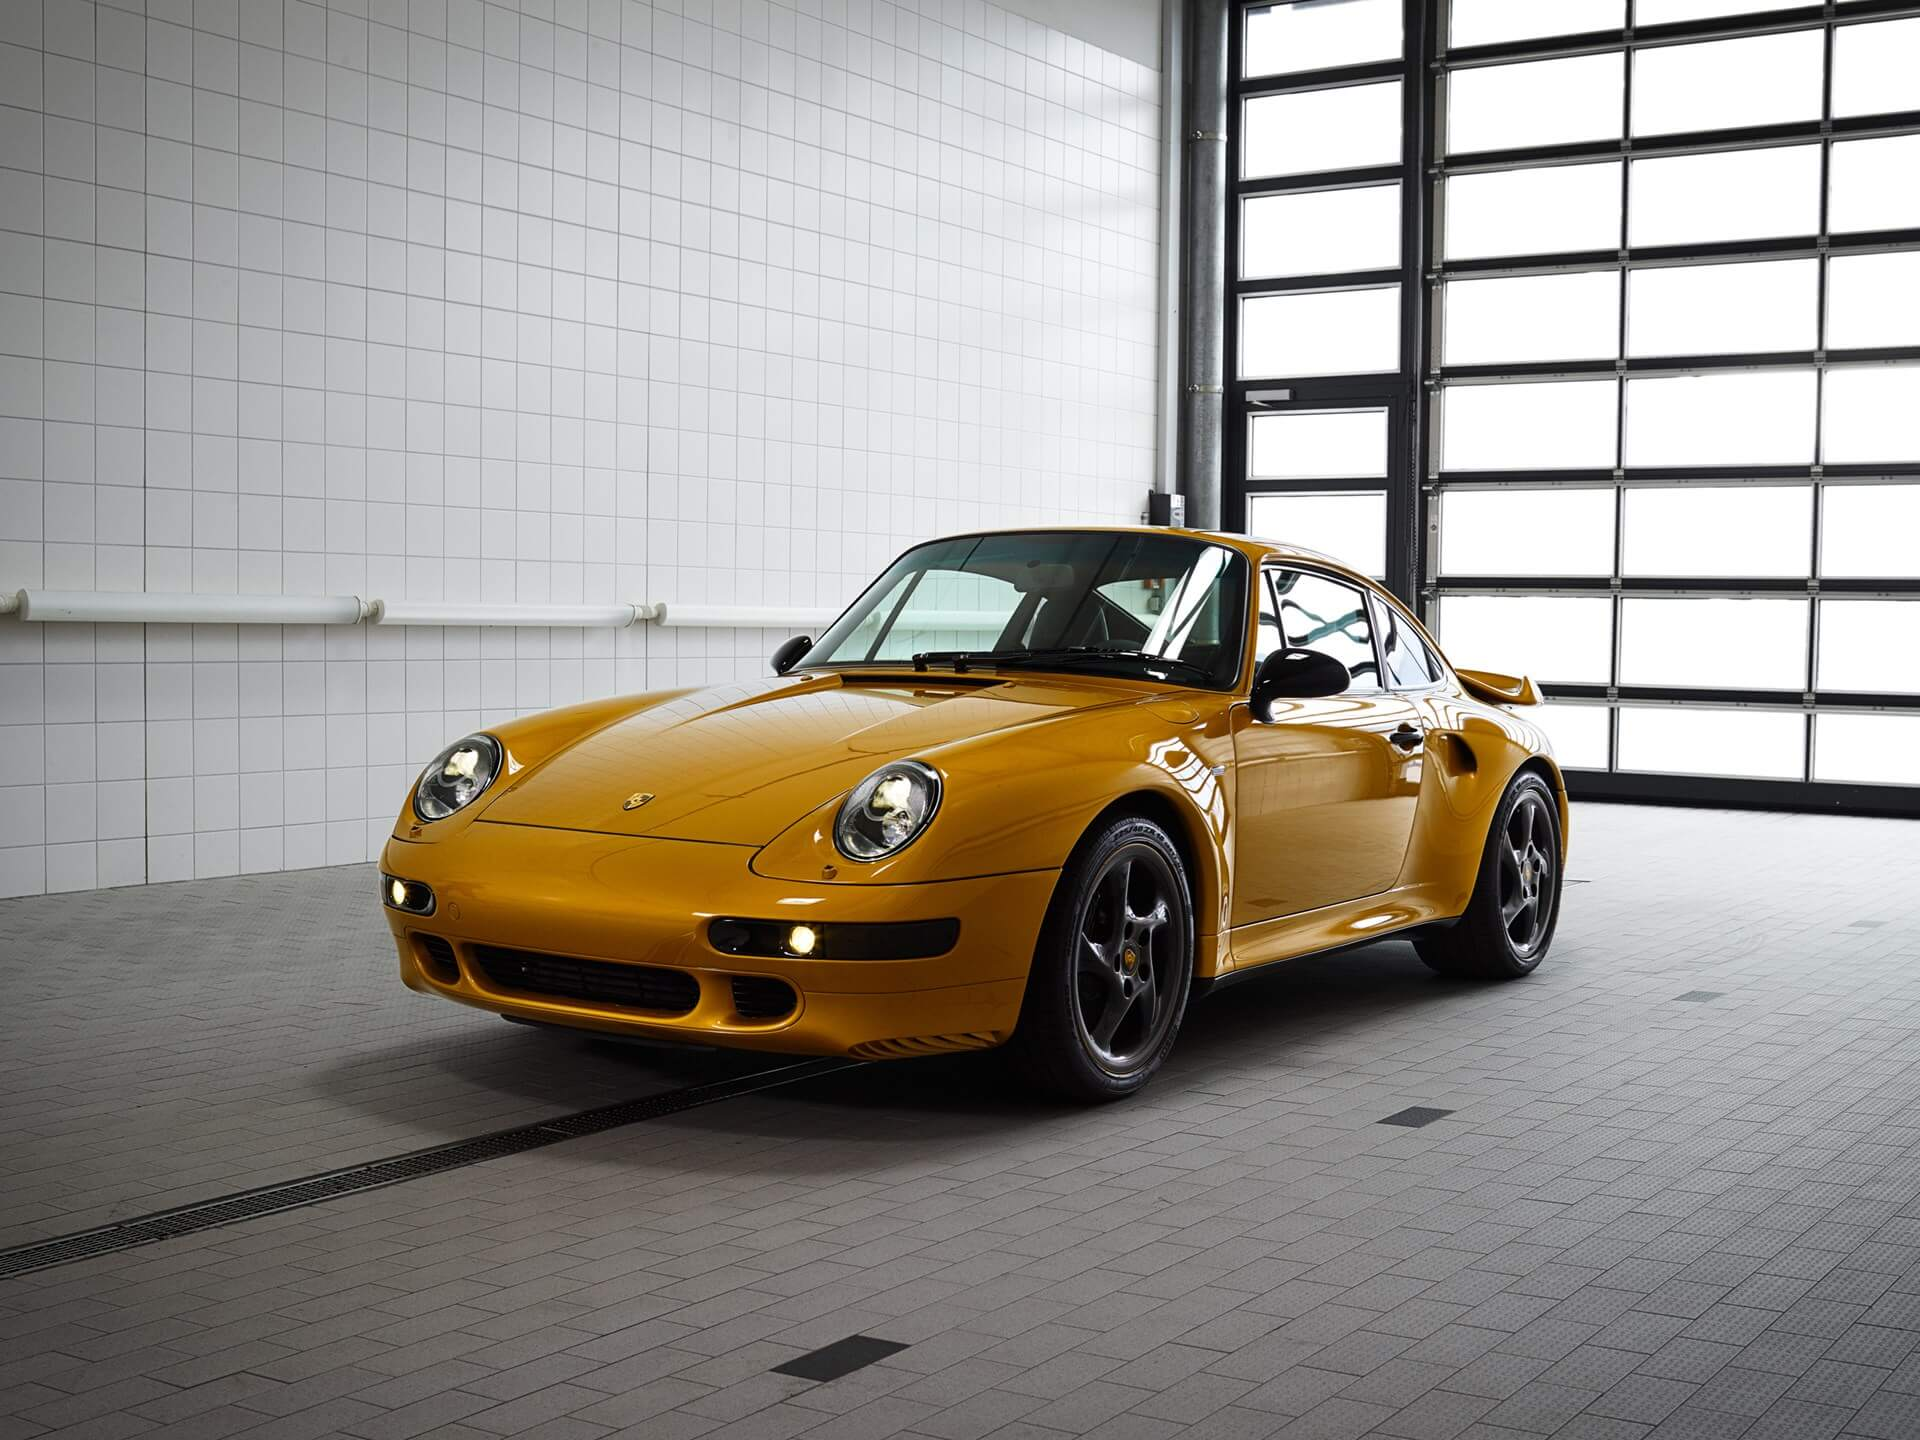 2018 Porsche 911 Turbo Classic Series Project Gold ©2018 Courtesy of RM Sotheby's